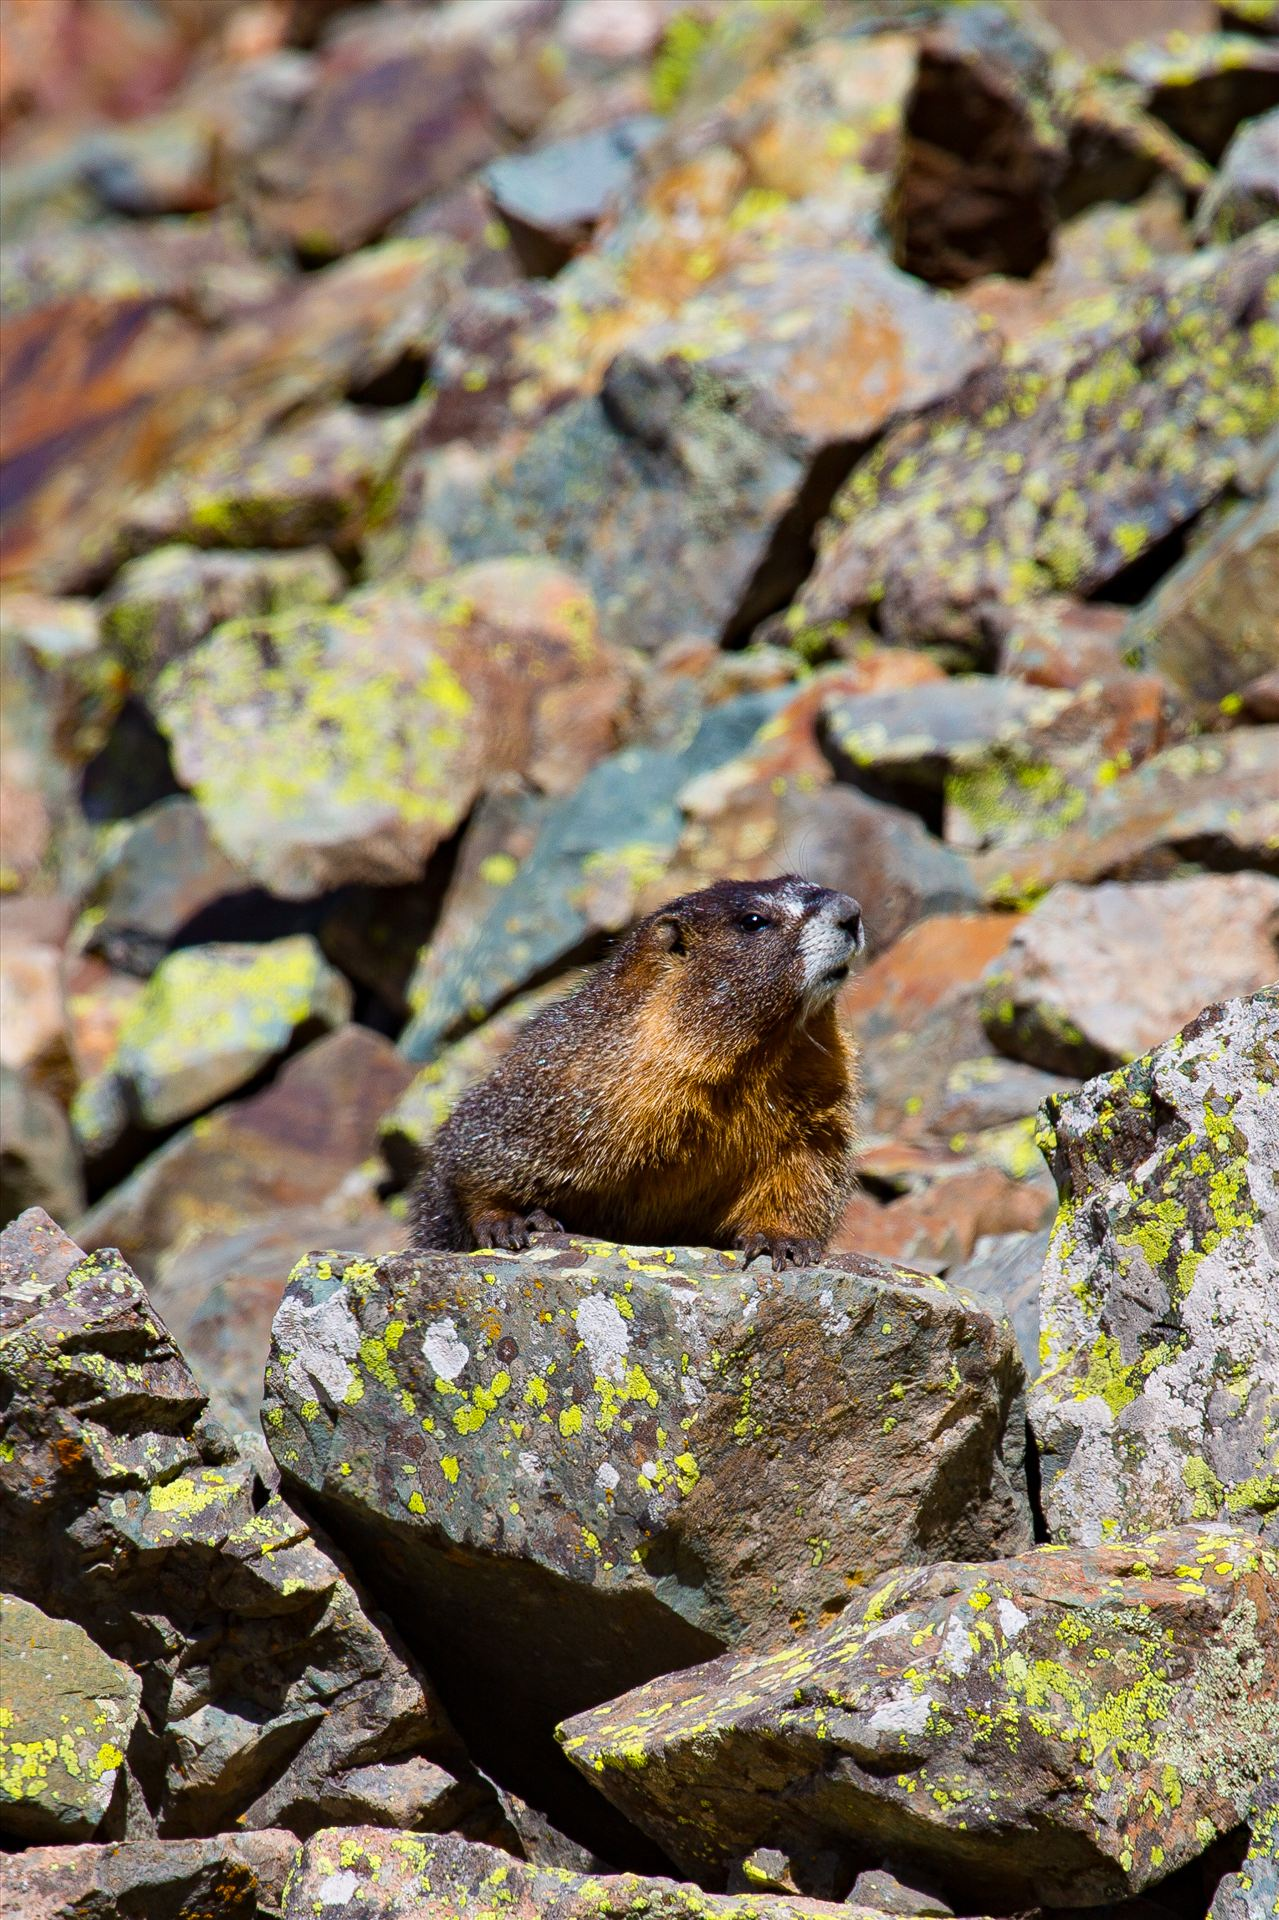 Ophir Pass Marmot - A marmot looks for snacks on Ophir Pass, near Ophir Colorado. by D Scott Smith